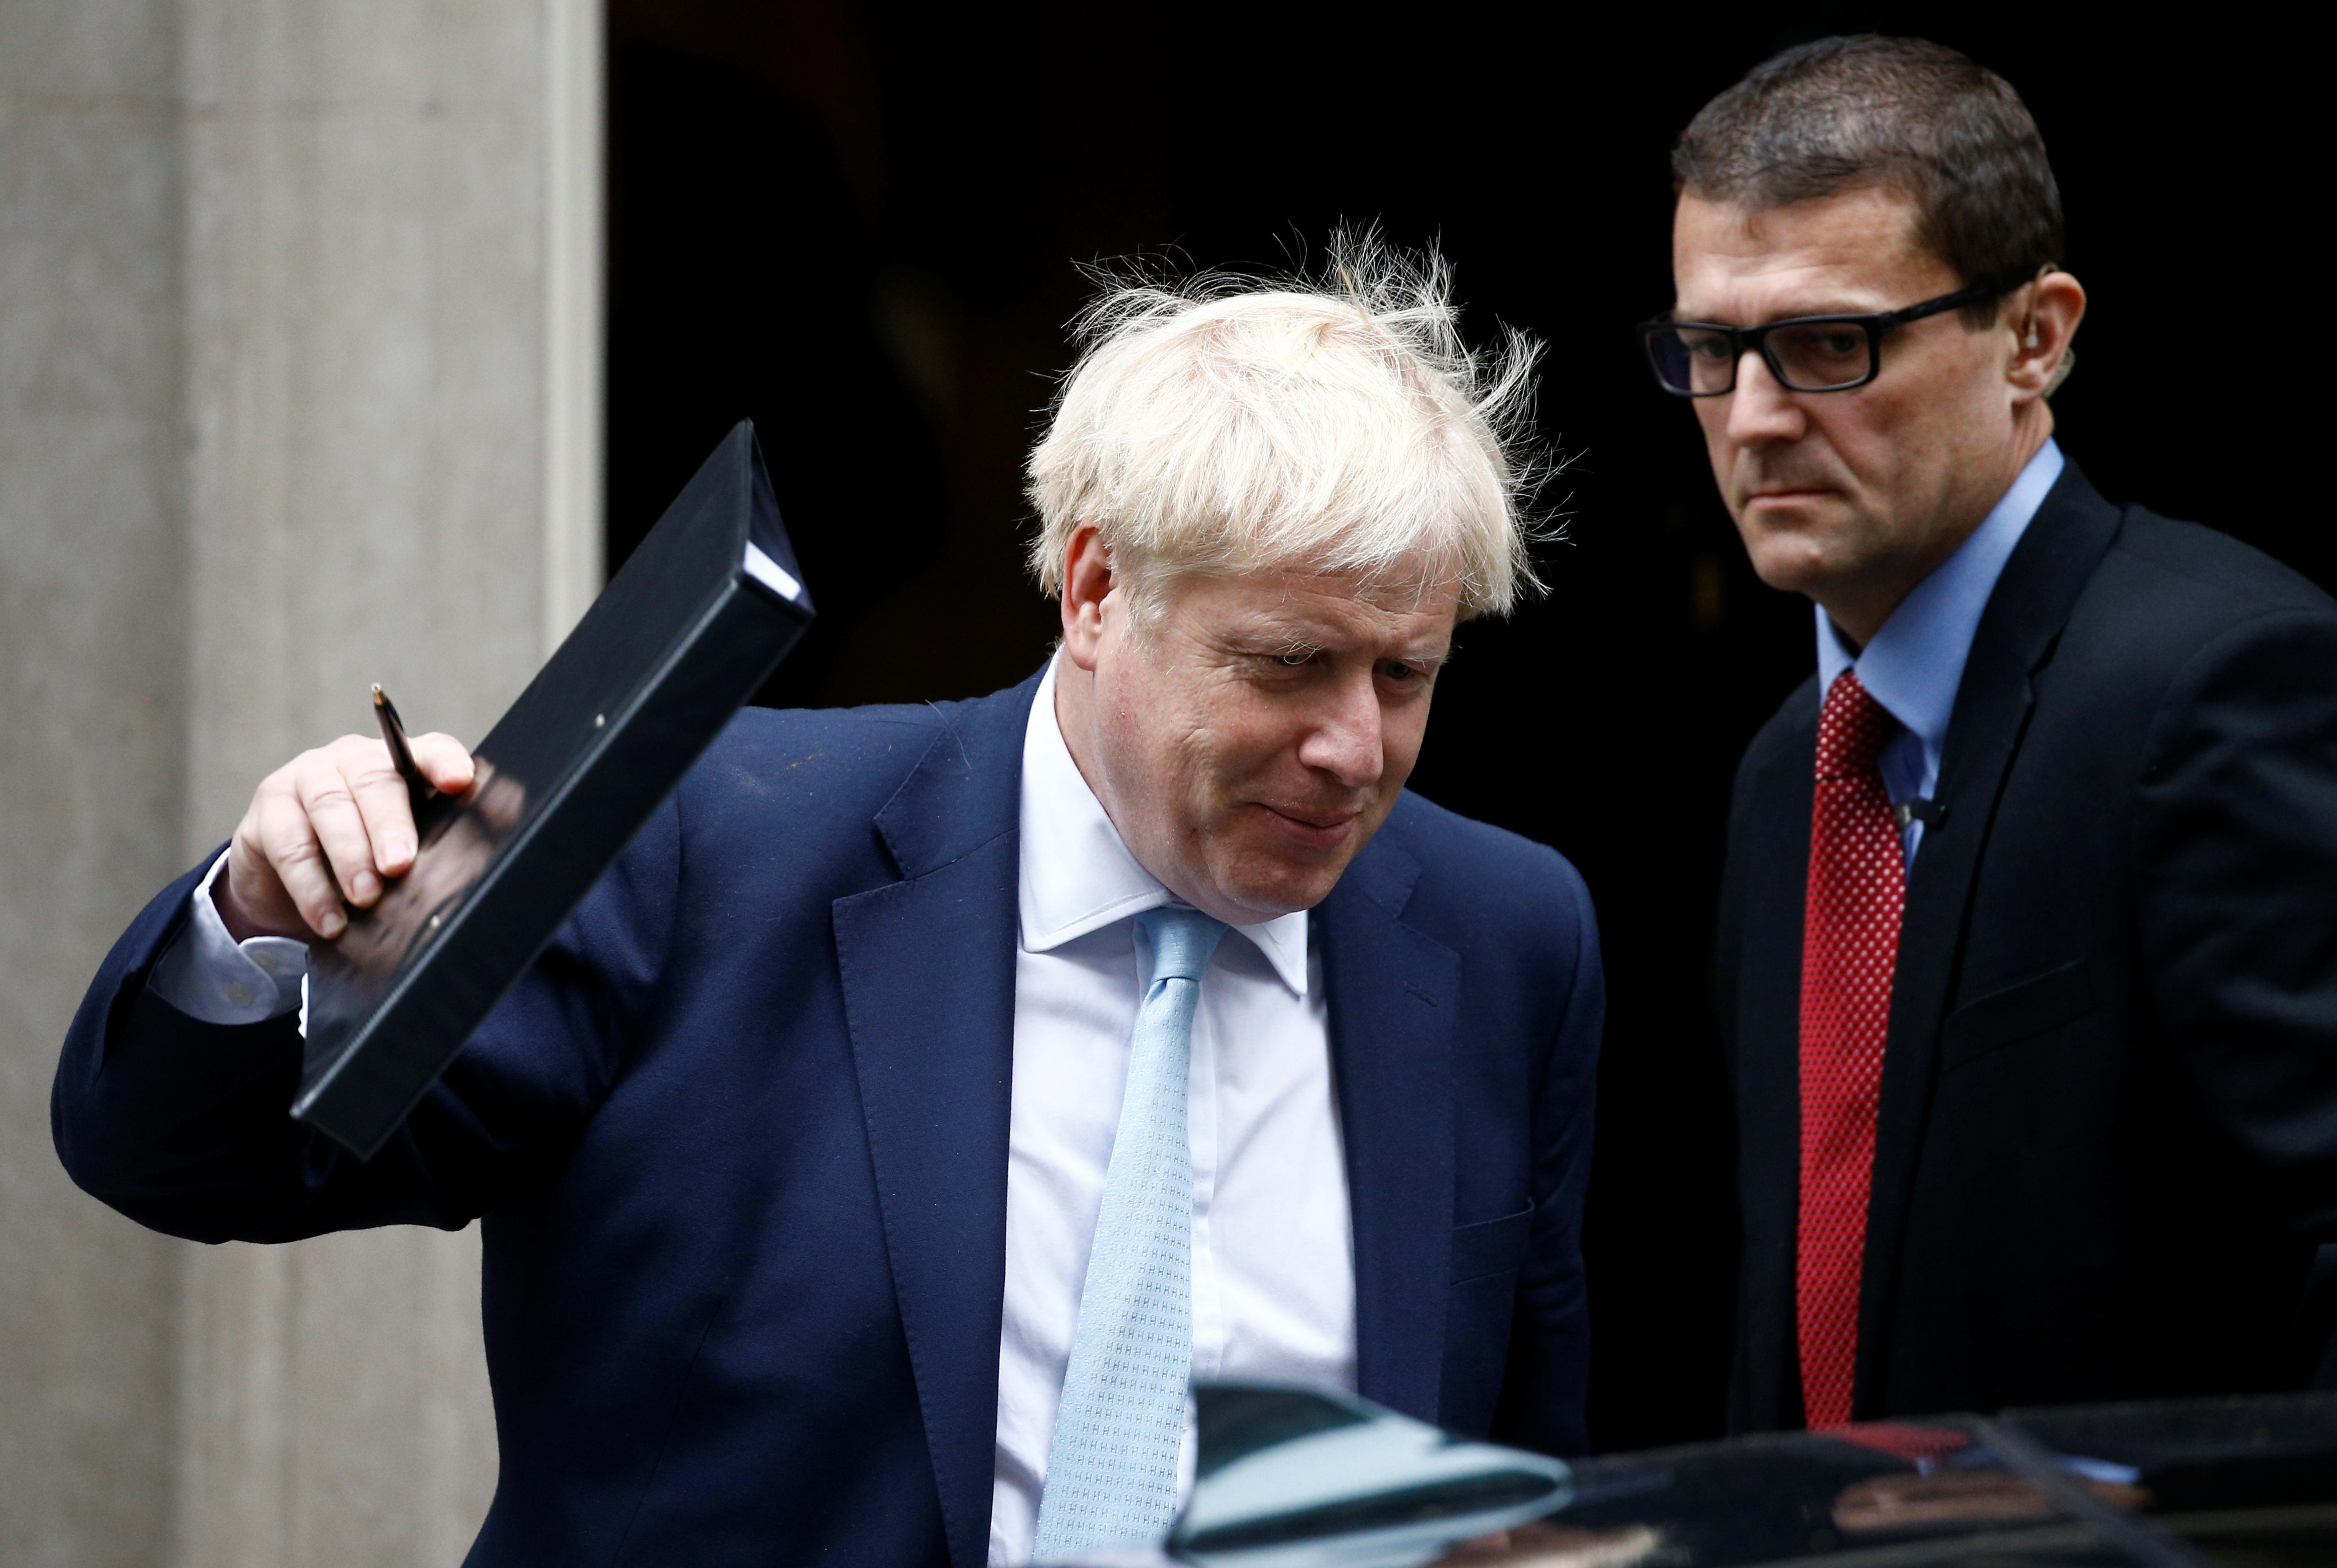 EU and Ireland sceptical of a Brexit breakthrough after Johnson's...